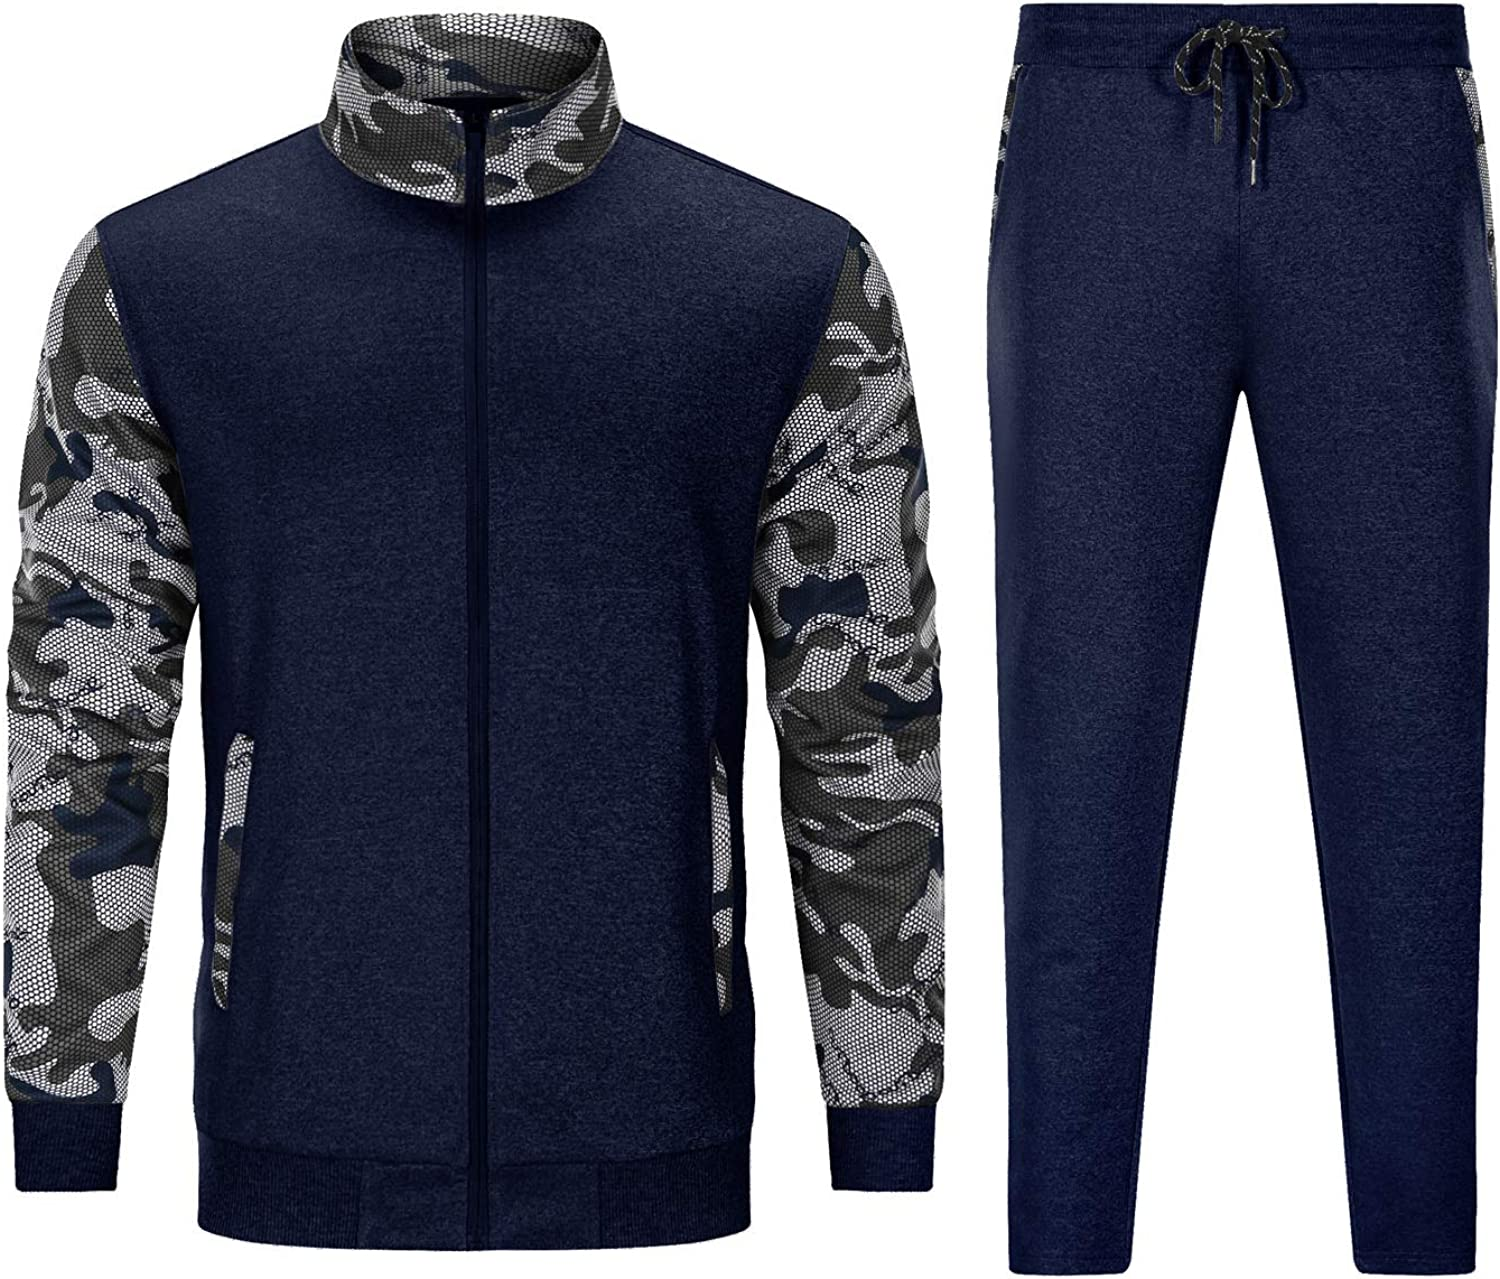 TACVASEN Men's Casual Tracksuit Full Directly managed store Jack Gorgeous Sleeve Sports Zip Long